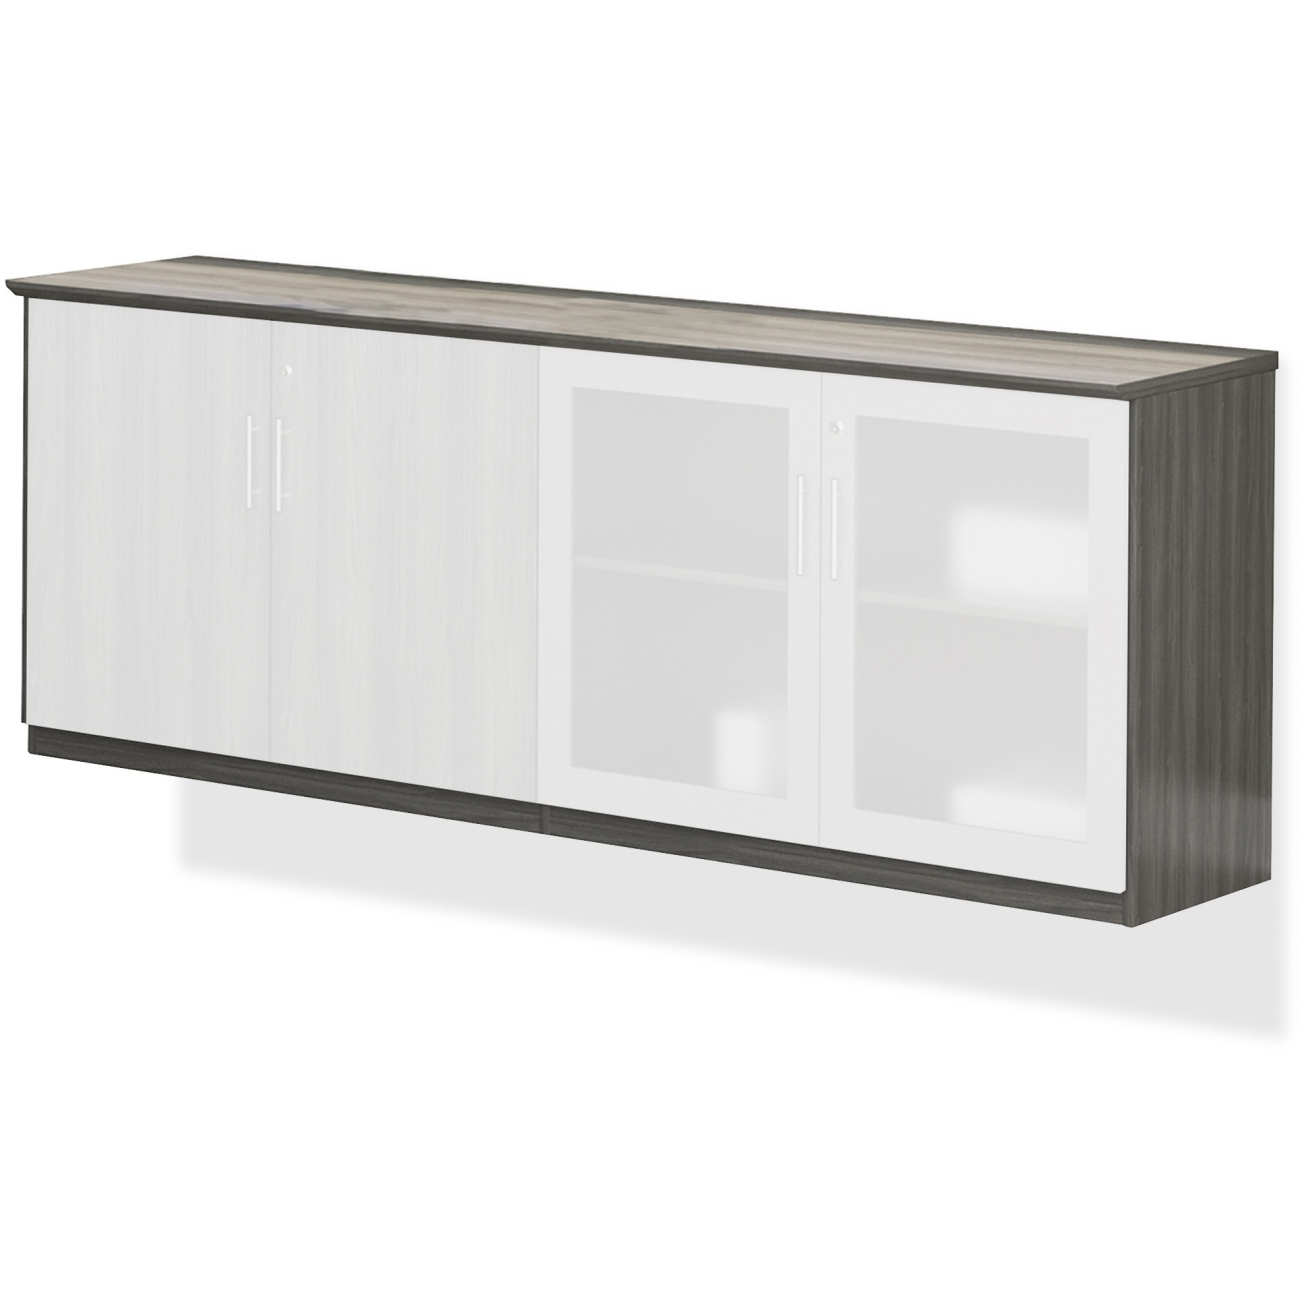 Medina Series Low Wall Cabinet with Doors, 72w x 20d x 29 1/2h, Gray Steel, Box1